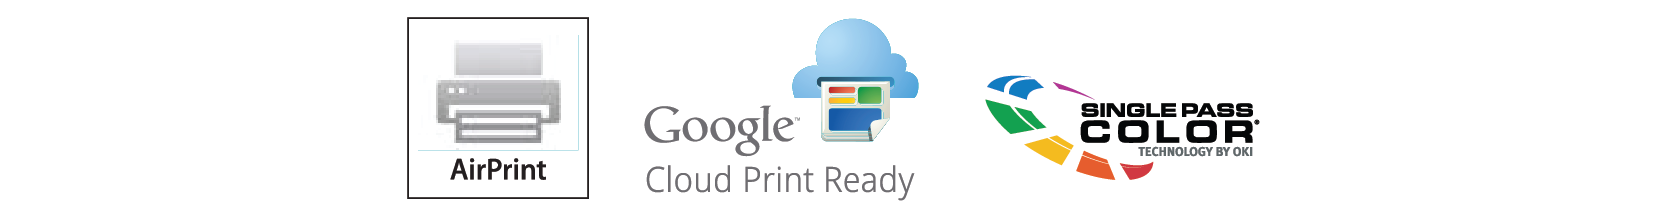 in ấn qua google cloud print